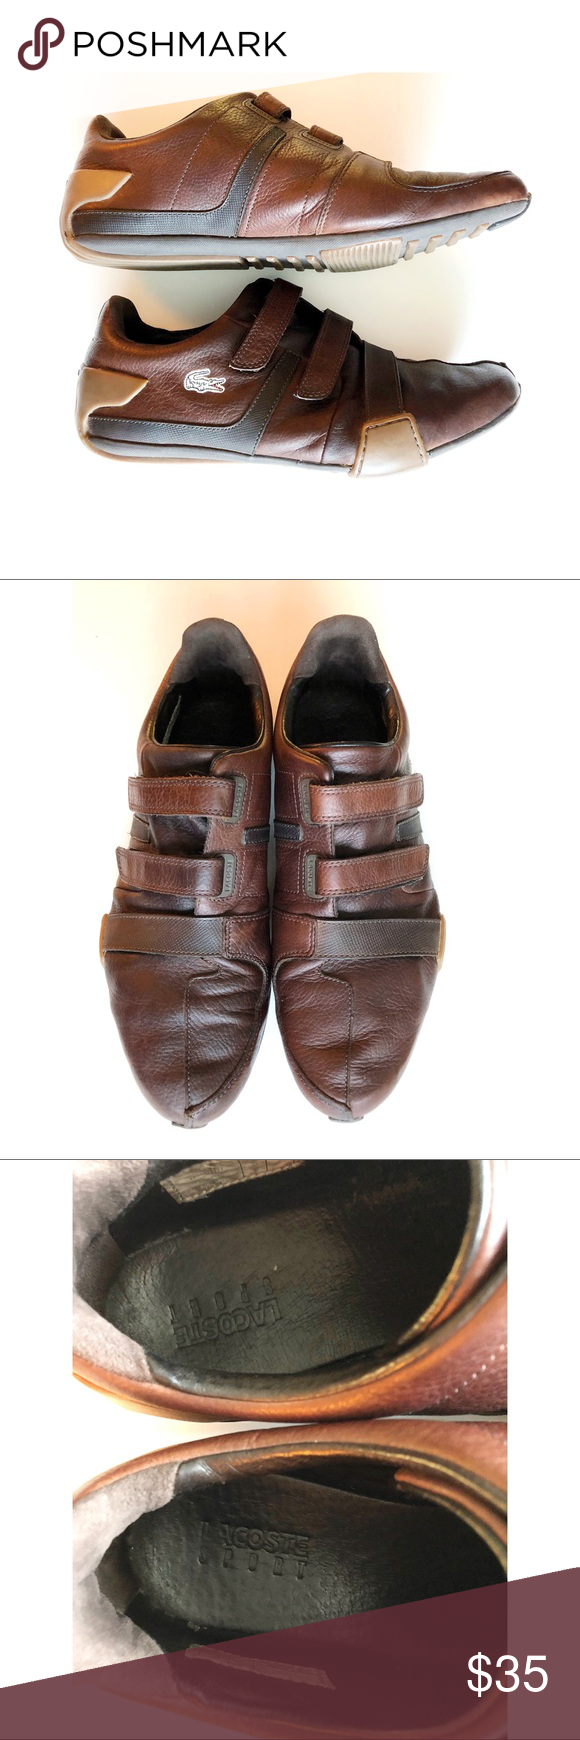 0fa7122bacd3 Lacoste Men s Brown Leather Velcro strap sneakers Very cool Men s Brown  Leather Lacoste Velcro sneakers.